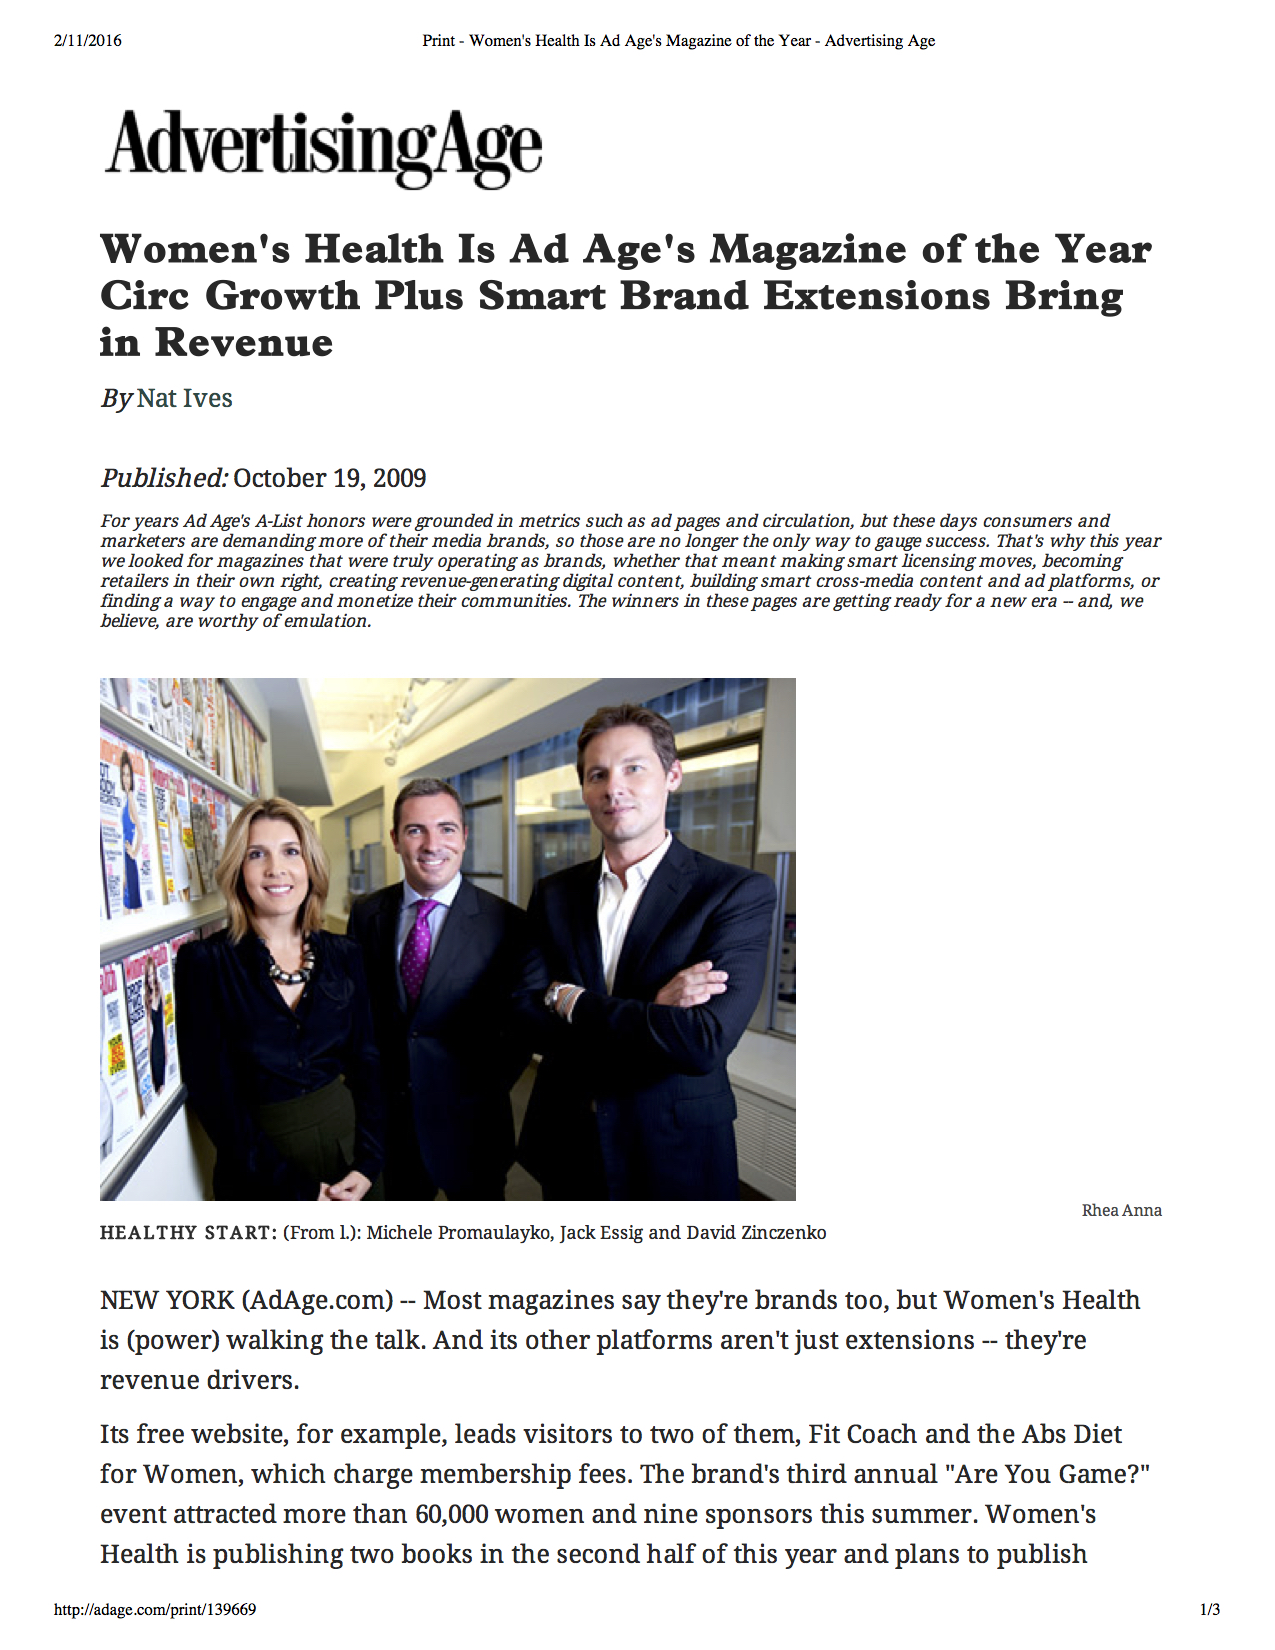 Advertising Age - Women's Health Is Ad Age's Magazine of the Year1.jpg